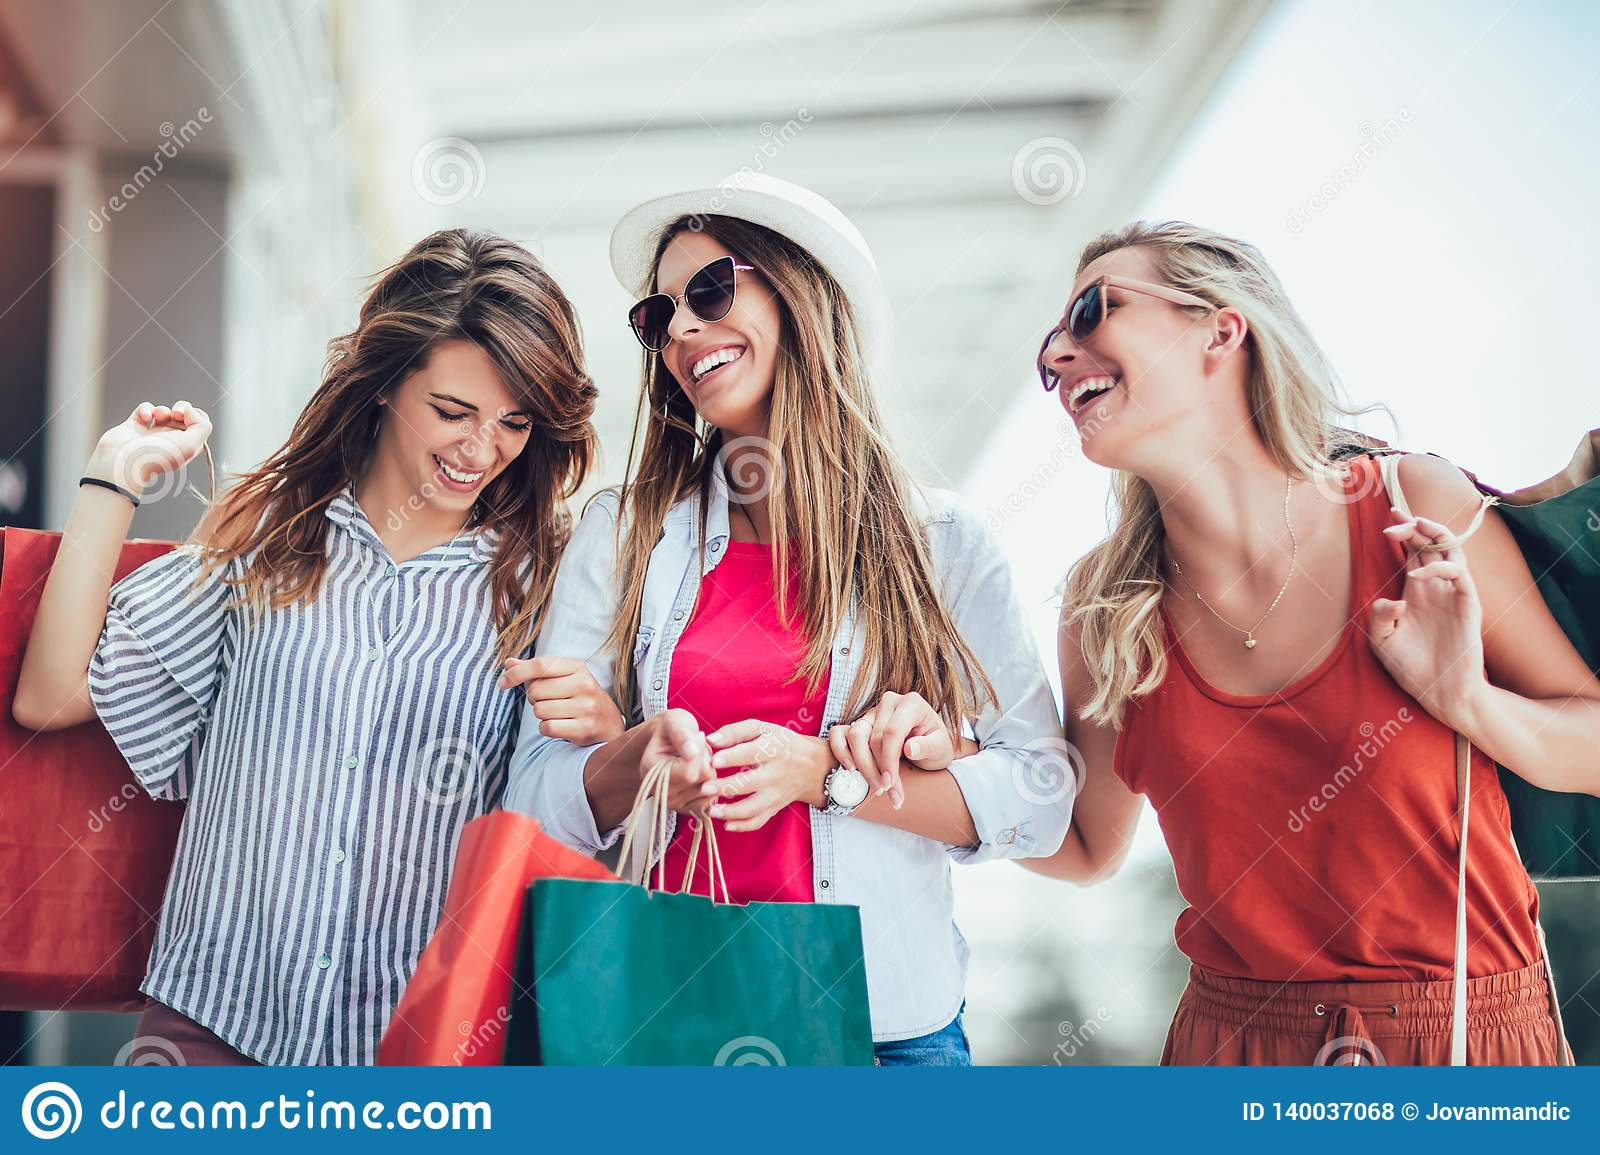 Woman with shopping bags in the city-sale, shopping, tourism and happy people concept